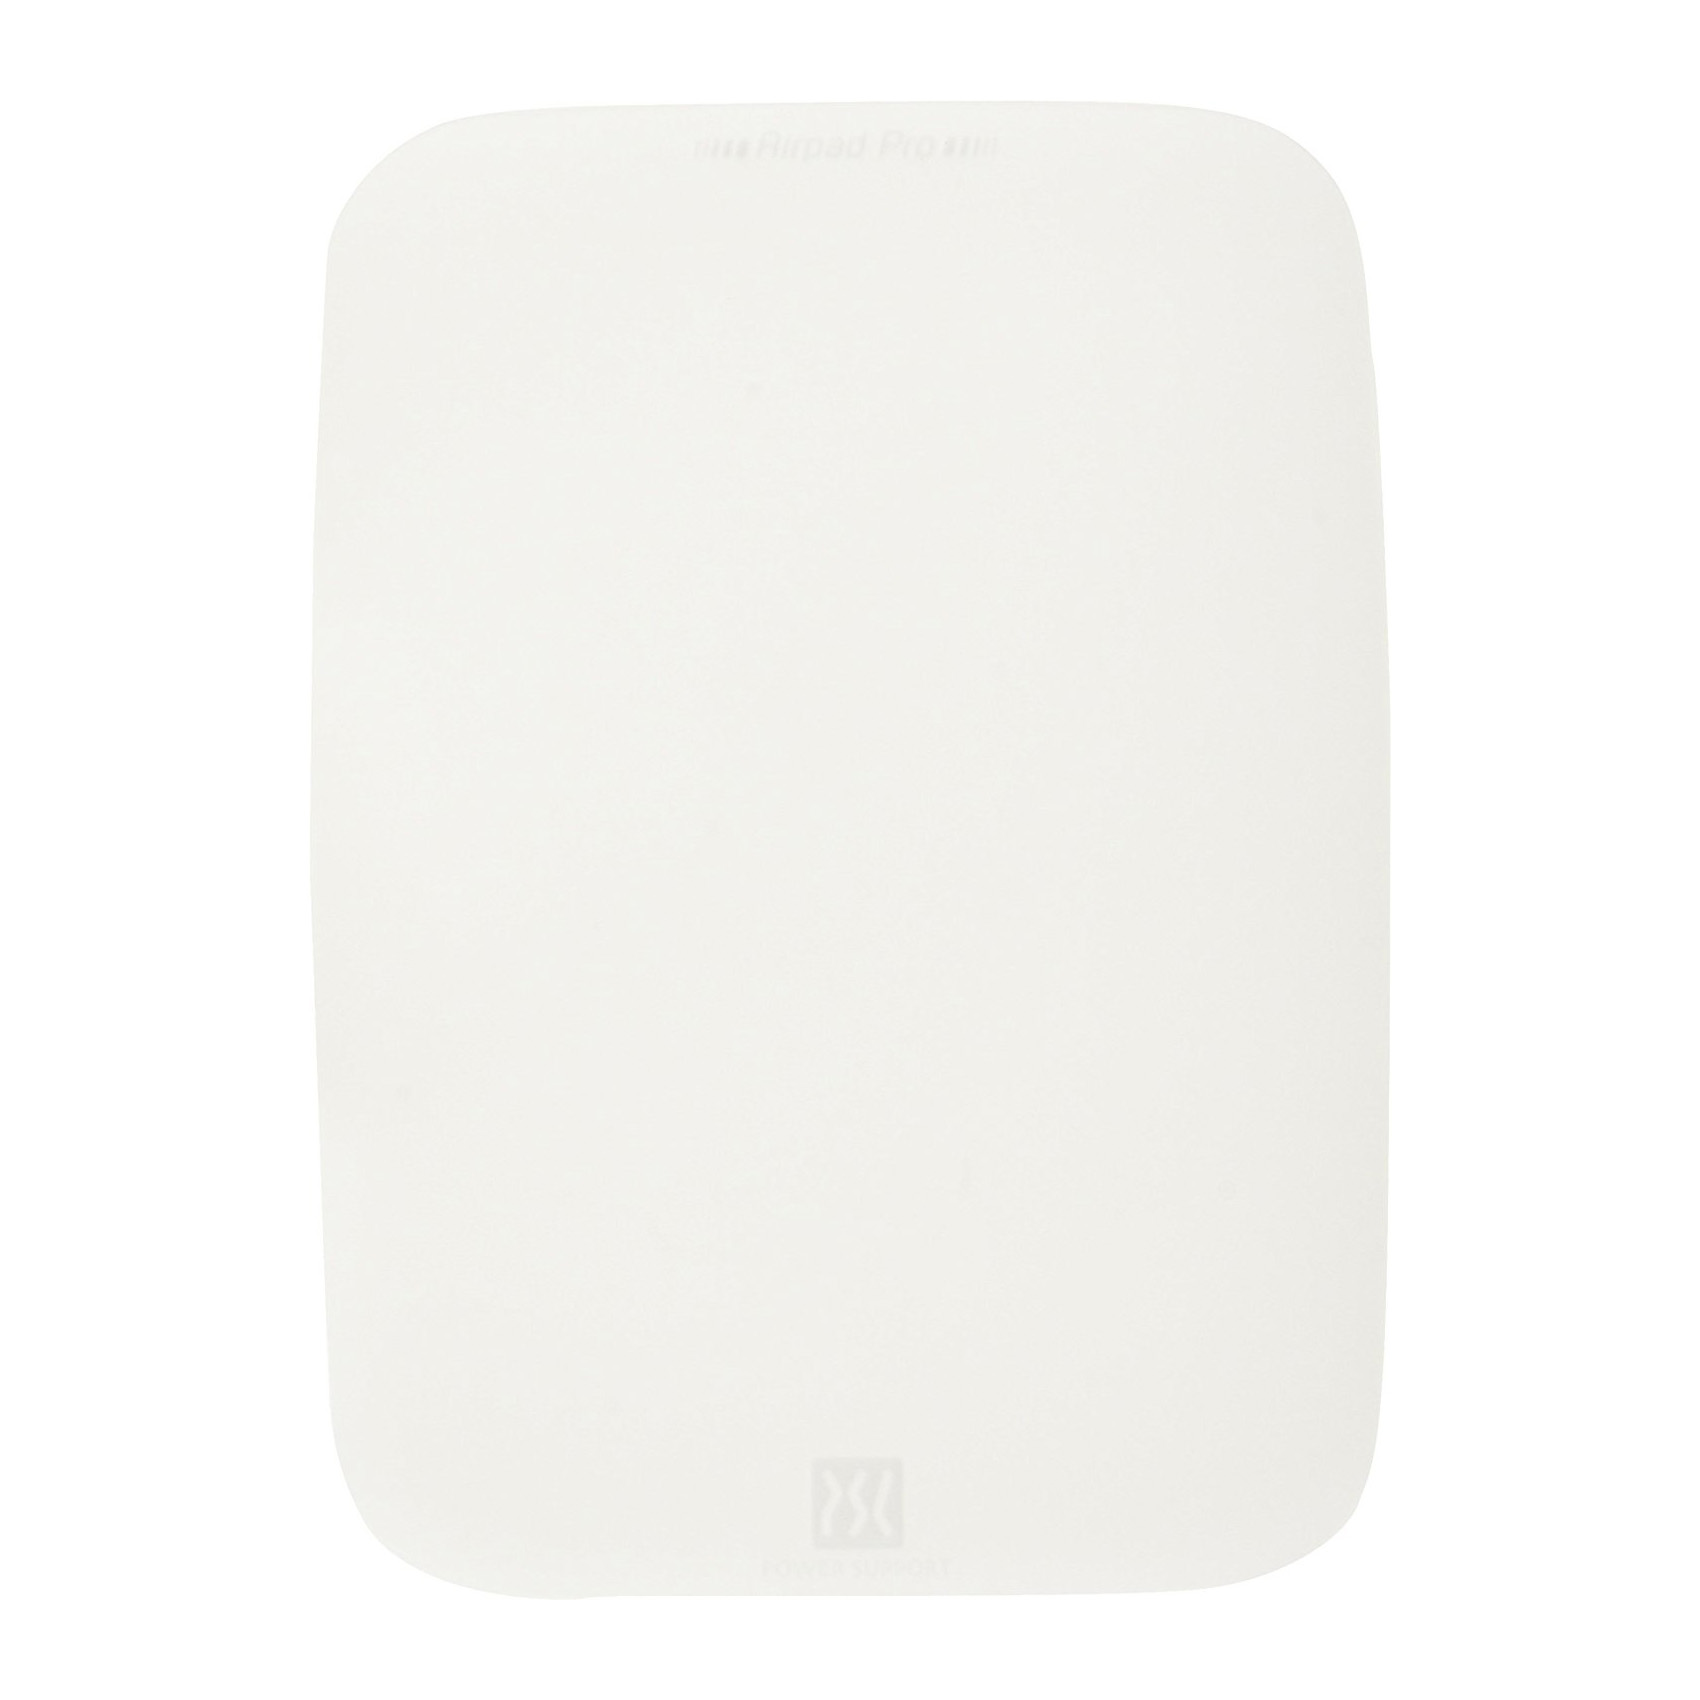 Power Support Airpad Pro III